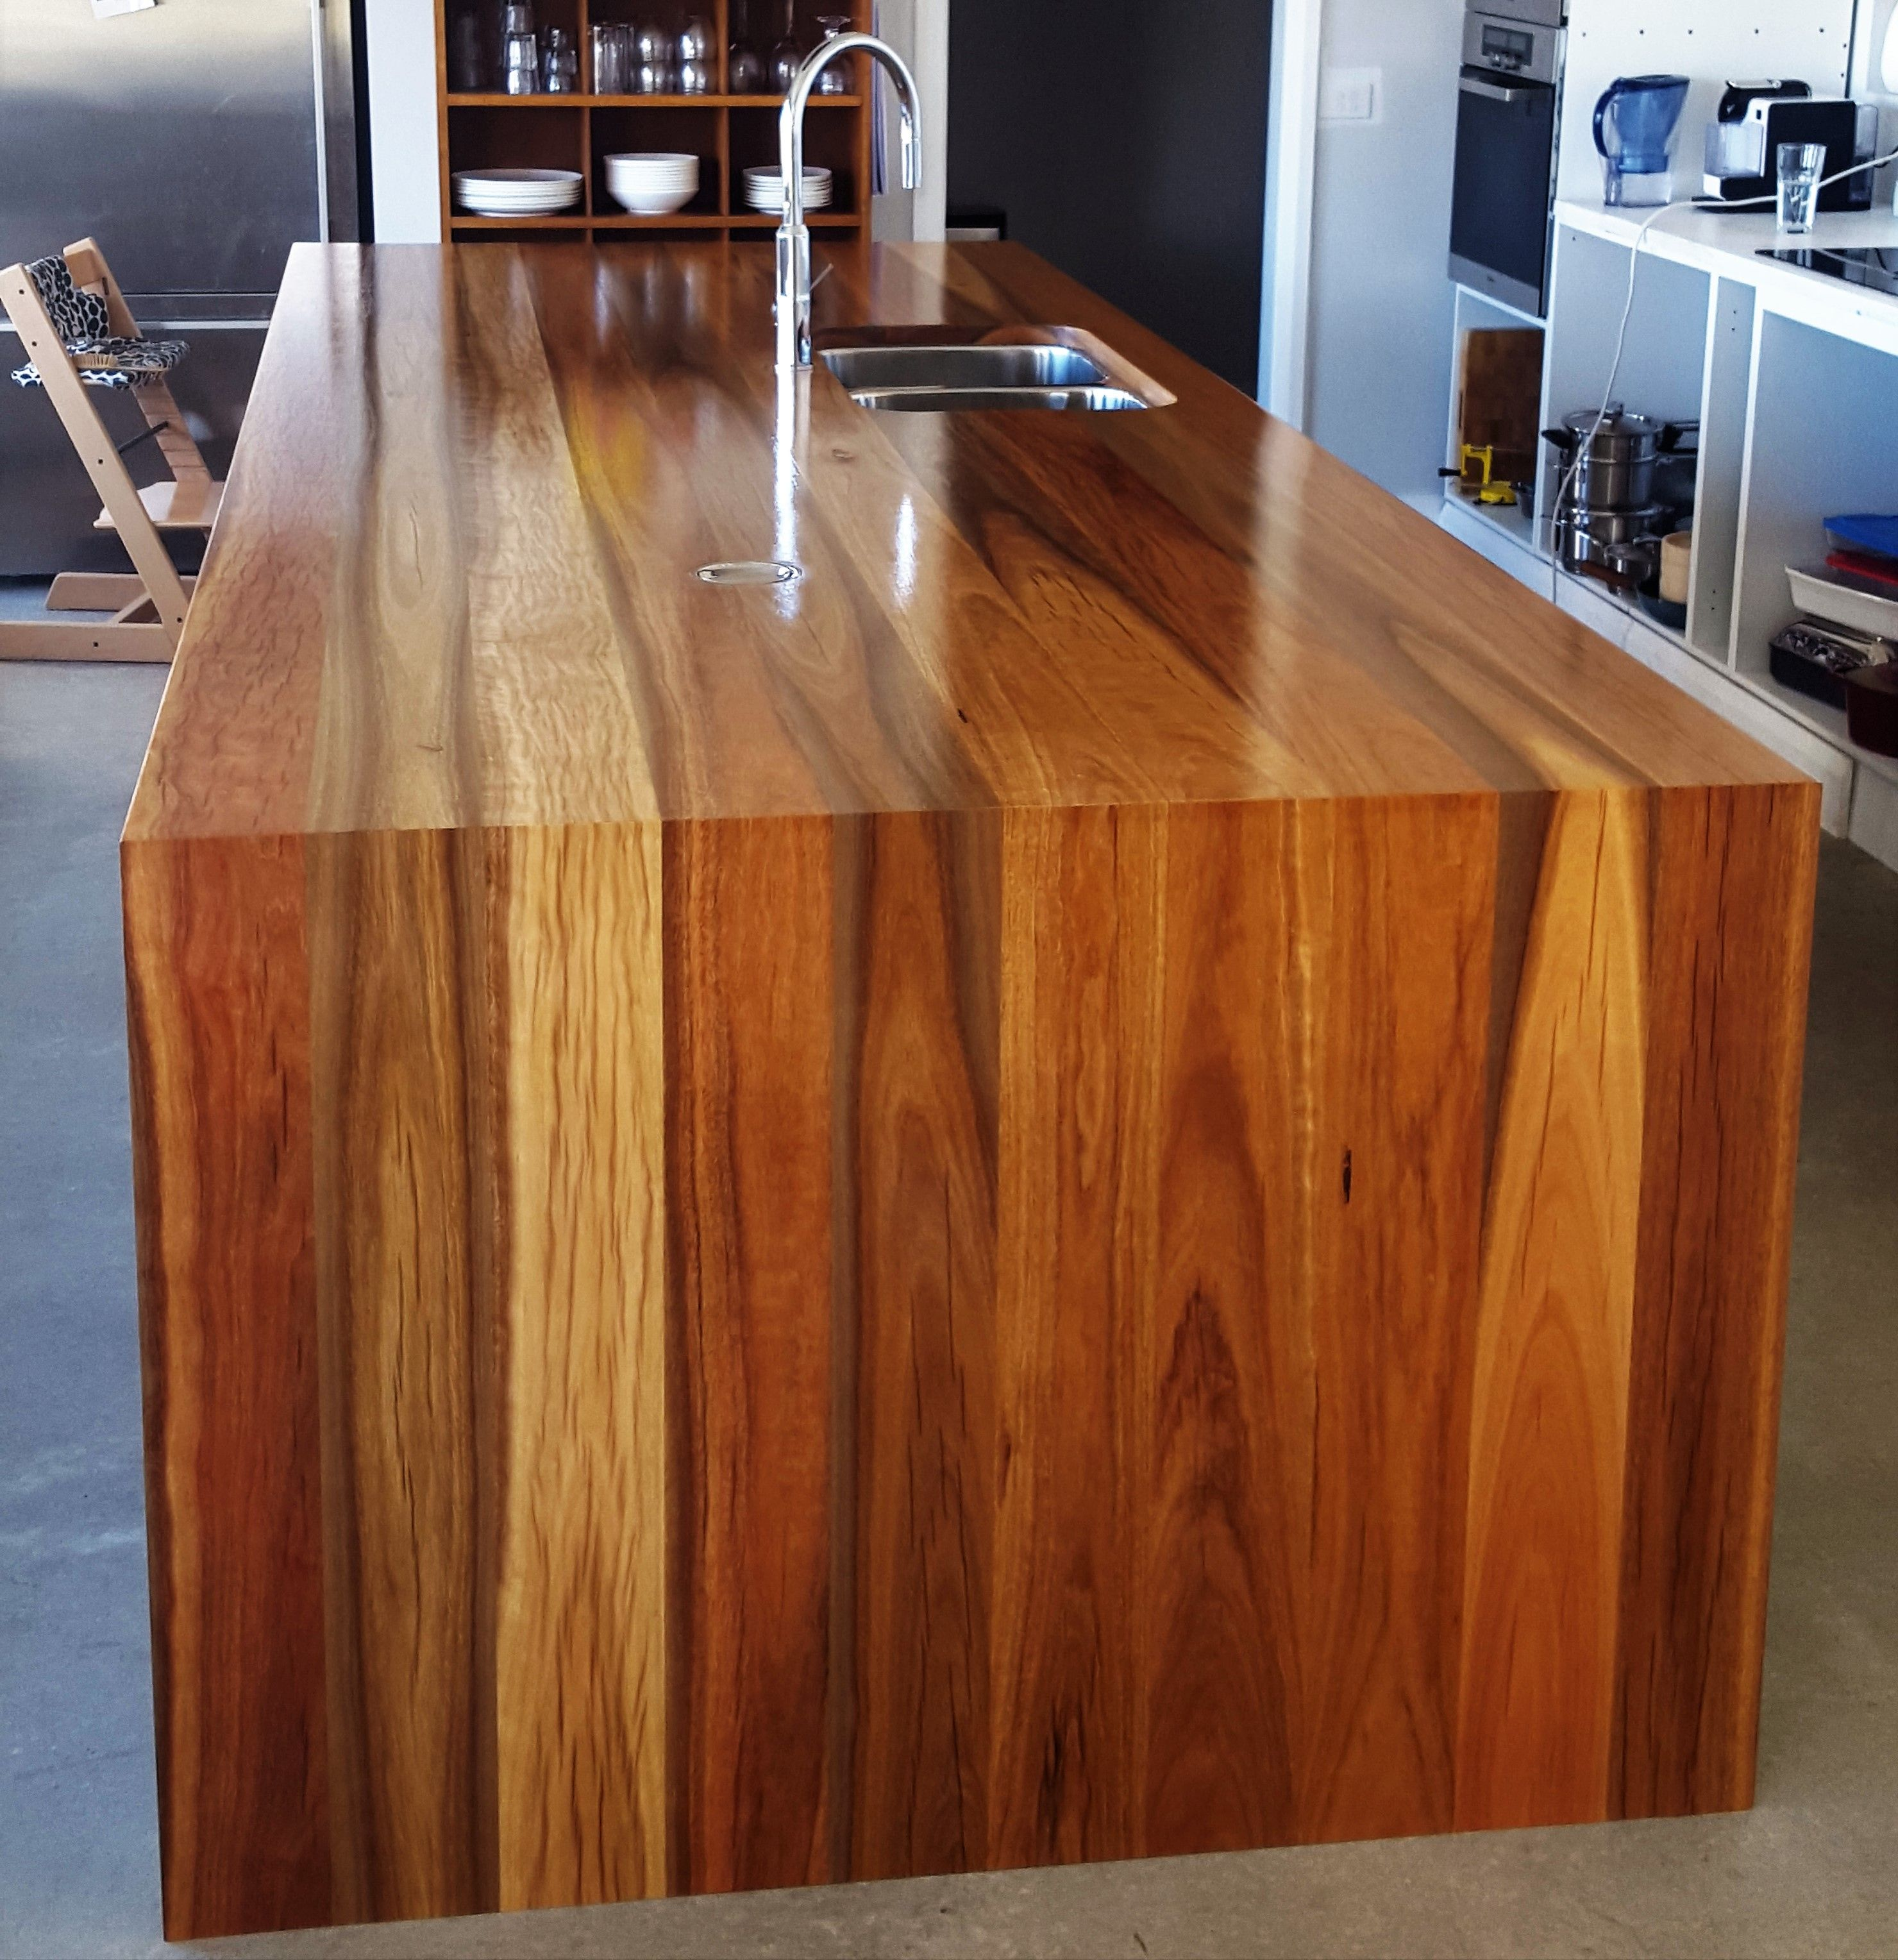 Timber Kitchen Black Benchtop: Spotted Gum Island Benchtop, Timber Benchtop, Kitchen